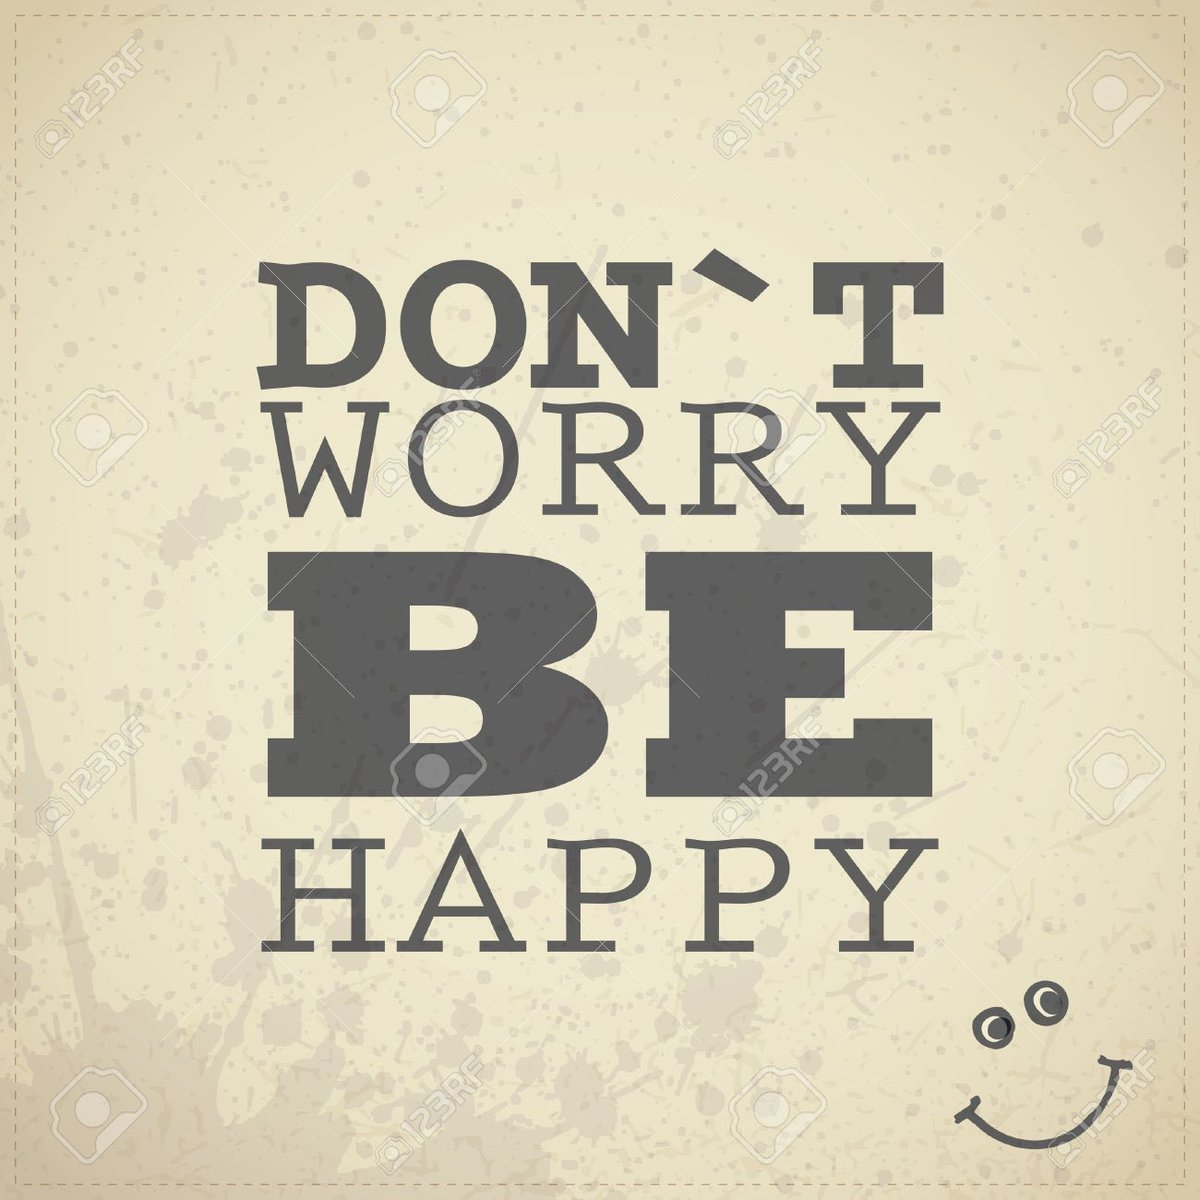 Don&#39;t Worry be happy ! #mantra du jour #citation #quote #happy #happiness #mood<br>http://pic.twitter.com/vt2VZjurZT